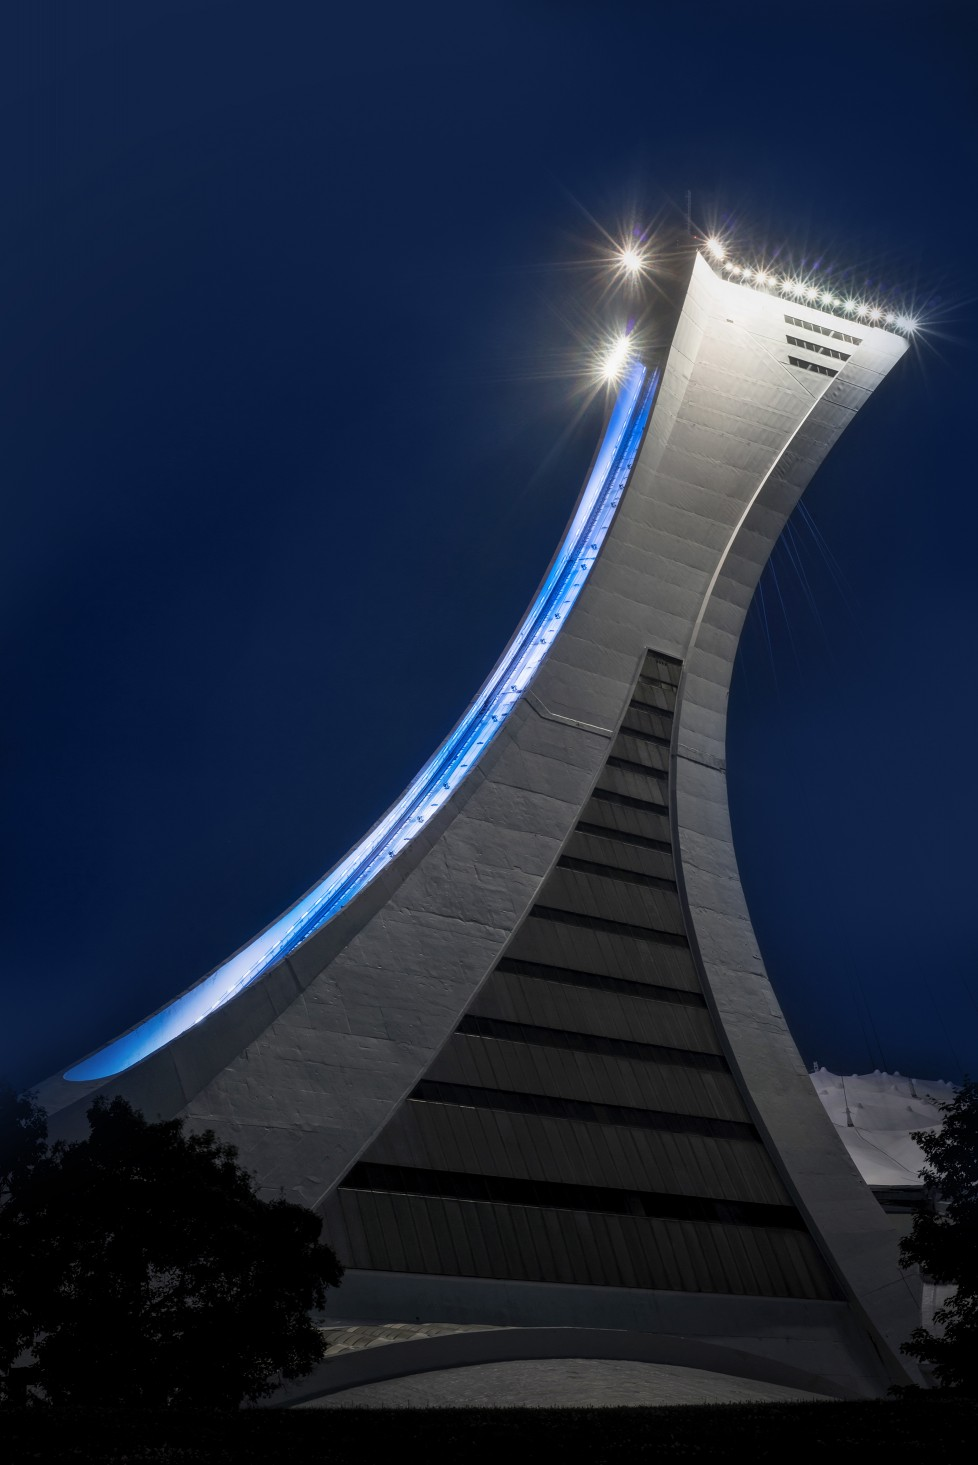 Lumenfacade luminaires were then mounted along the length of the tower's spinal column.